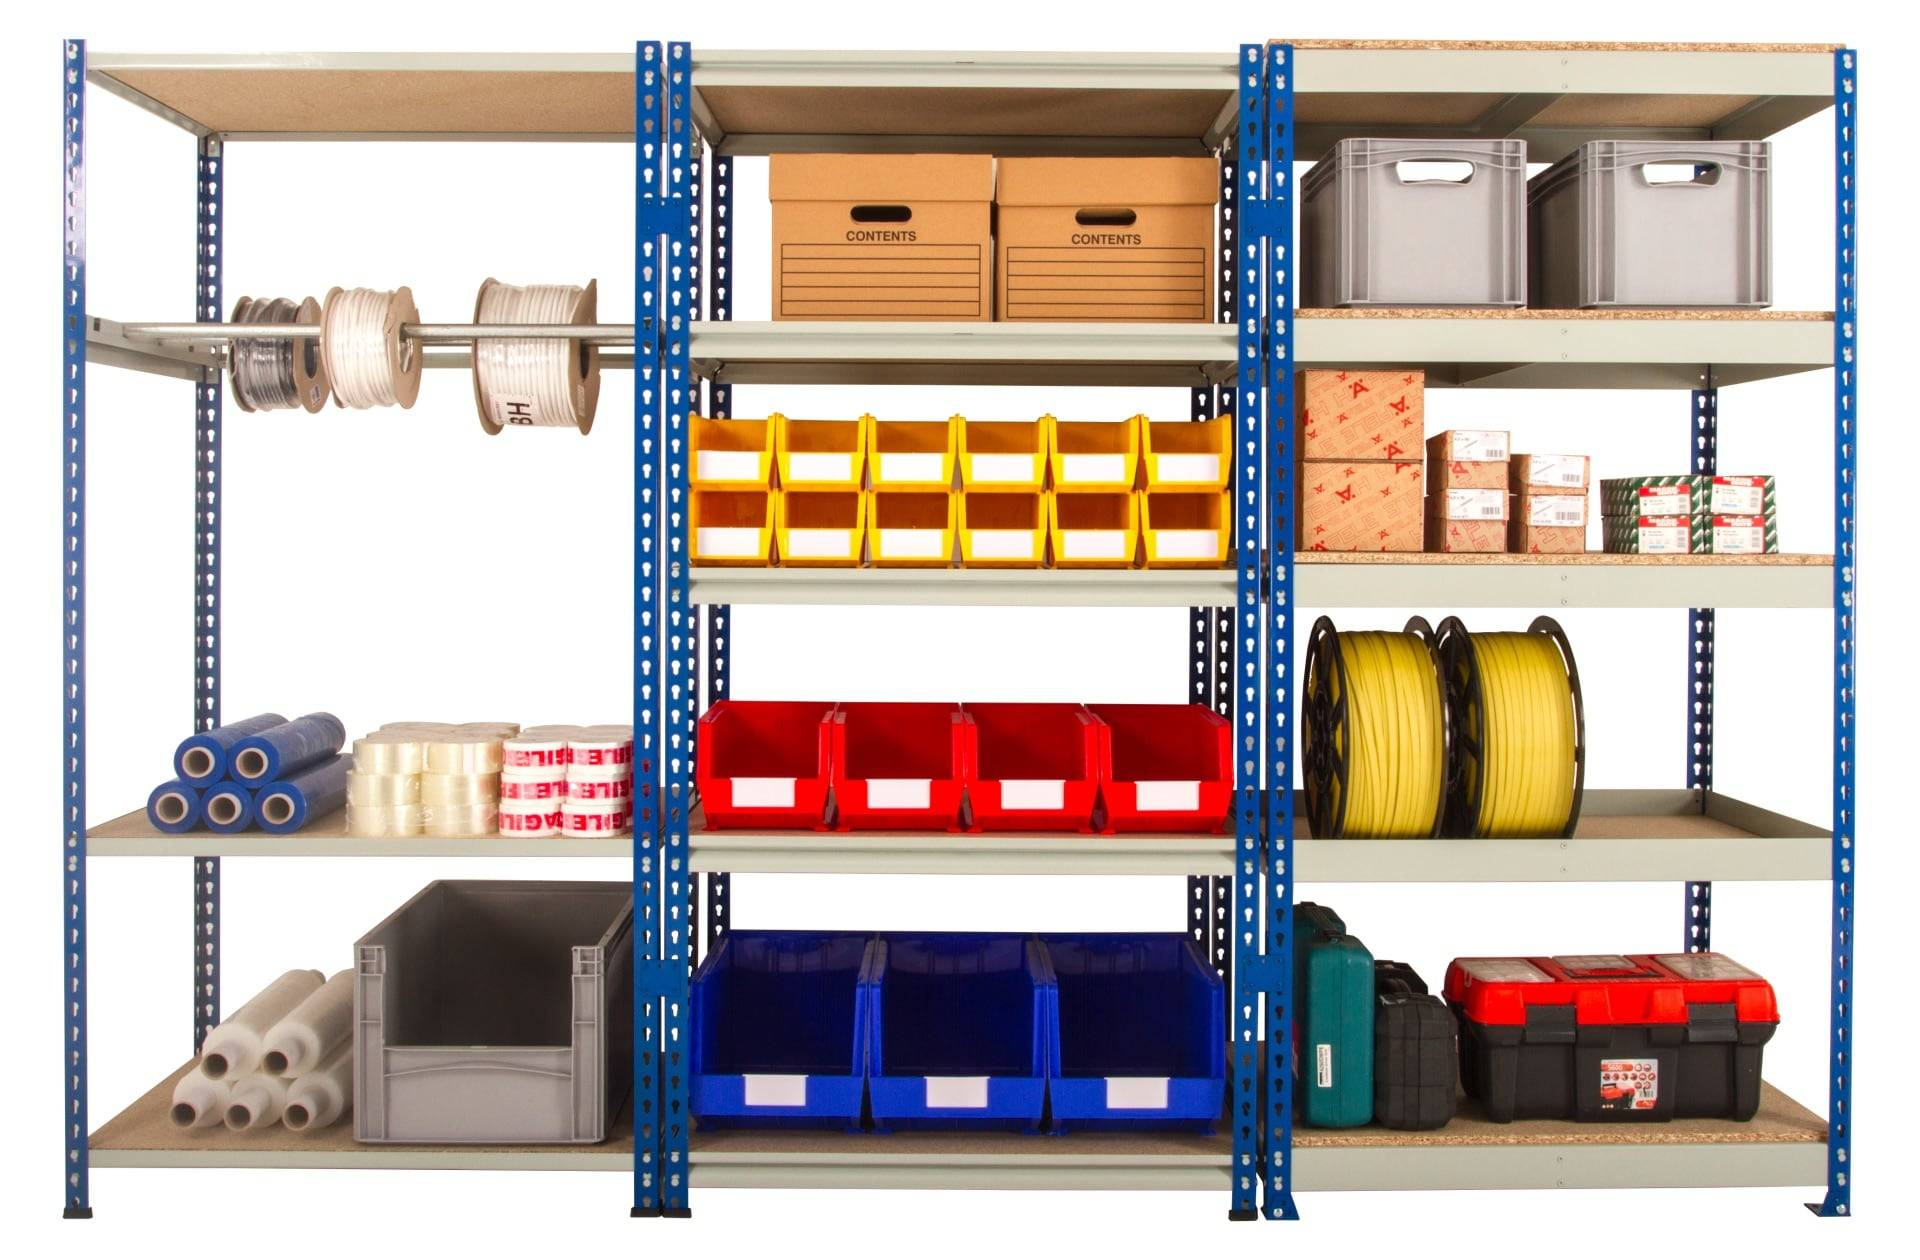 Shelf Rack, New And Used Racking, Beams, Frames, Pallets, Decks, New And Used Shelving, Small Parts Storage Systems, Mezzanine Floors, Work Benches